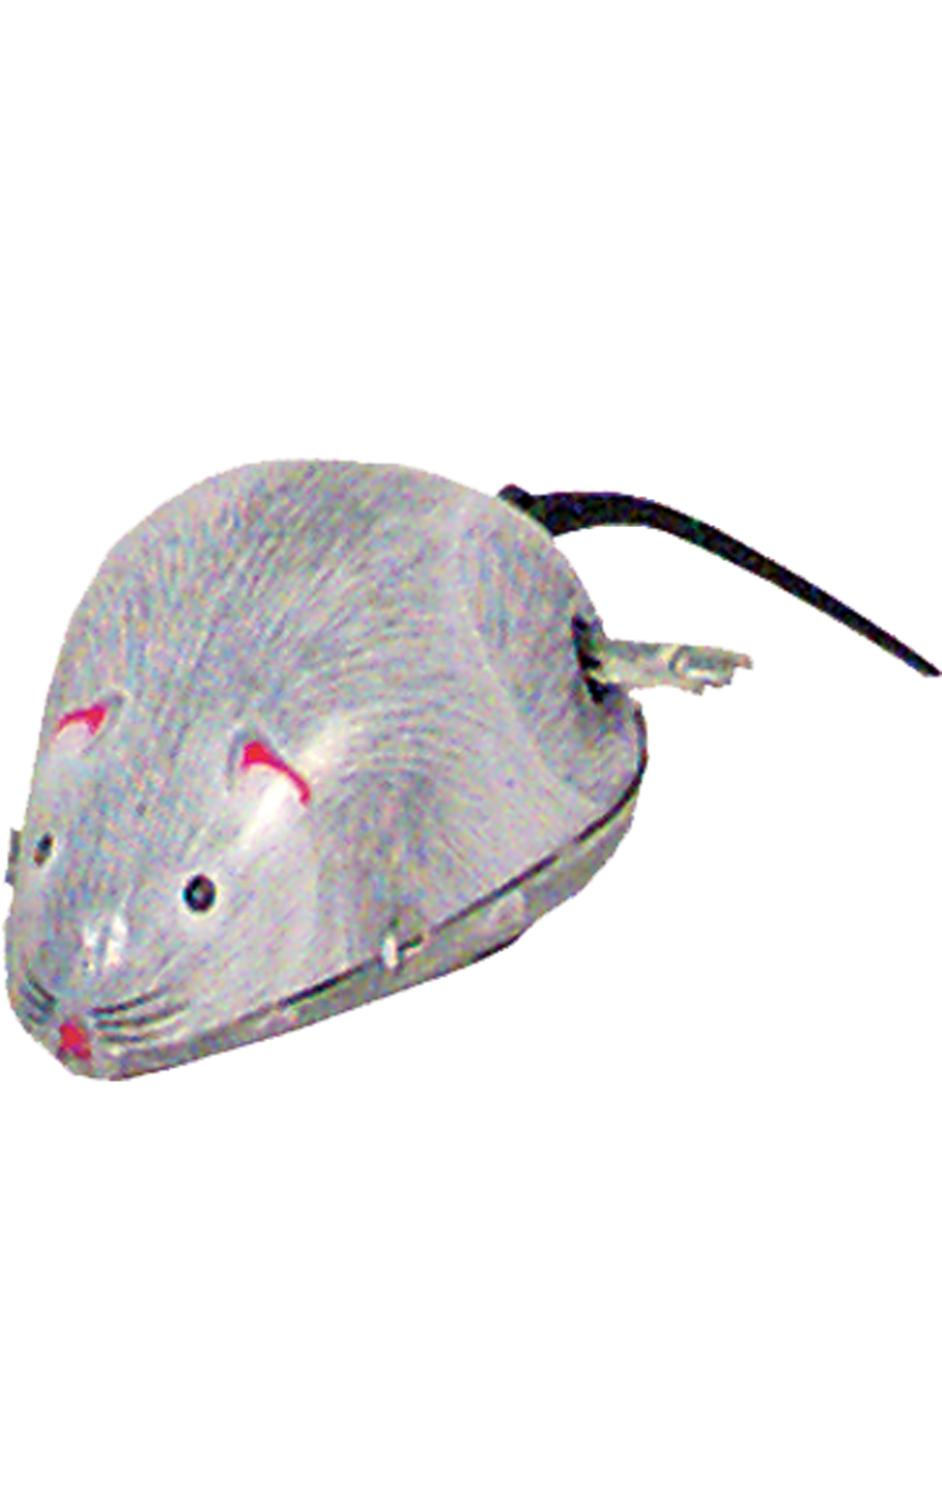 MS077 - Collectible Tin Toy - Mouse with Moving Tail - 2